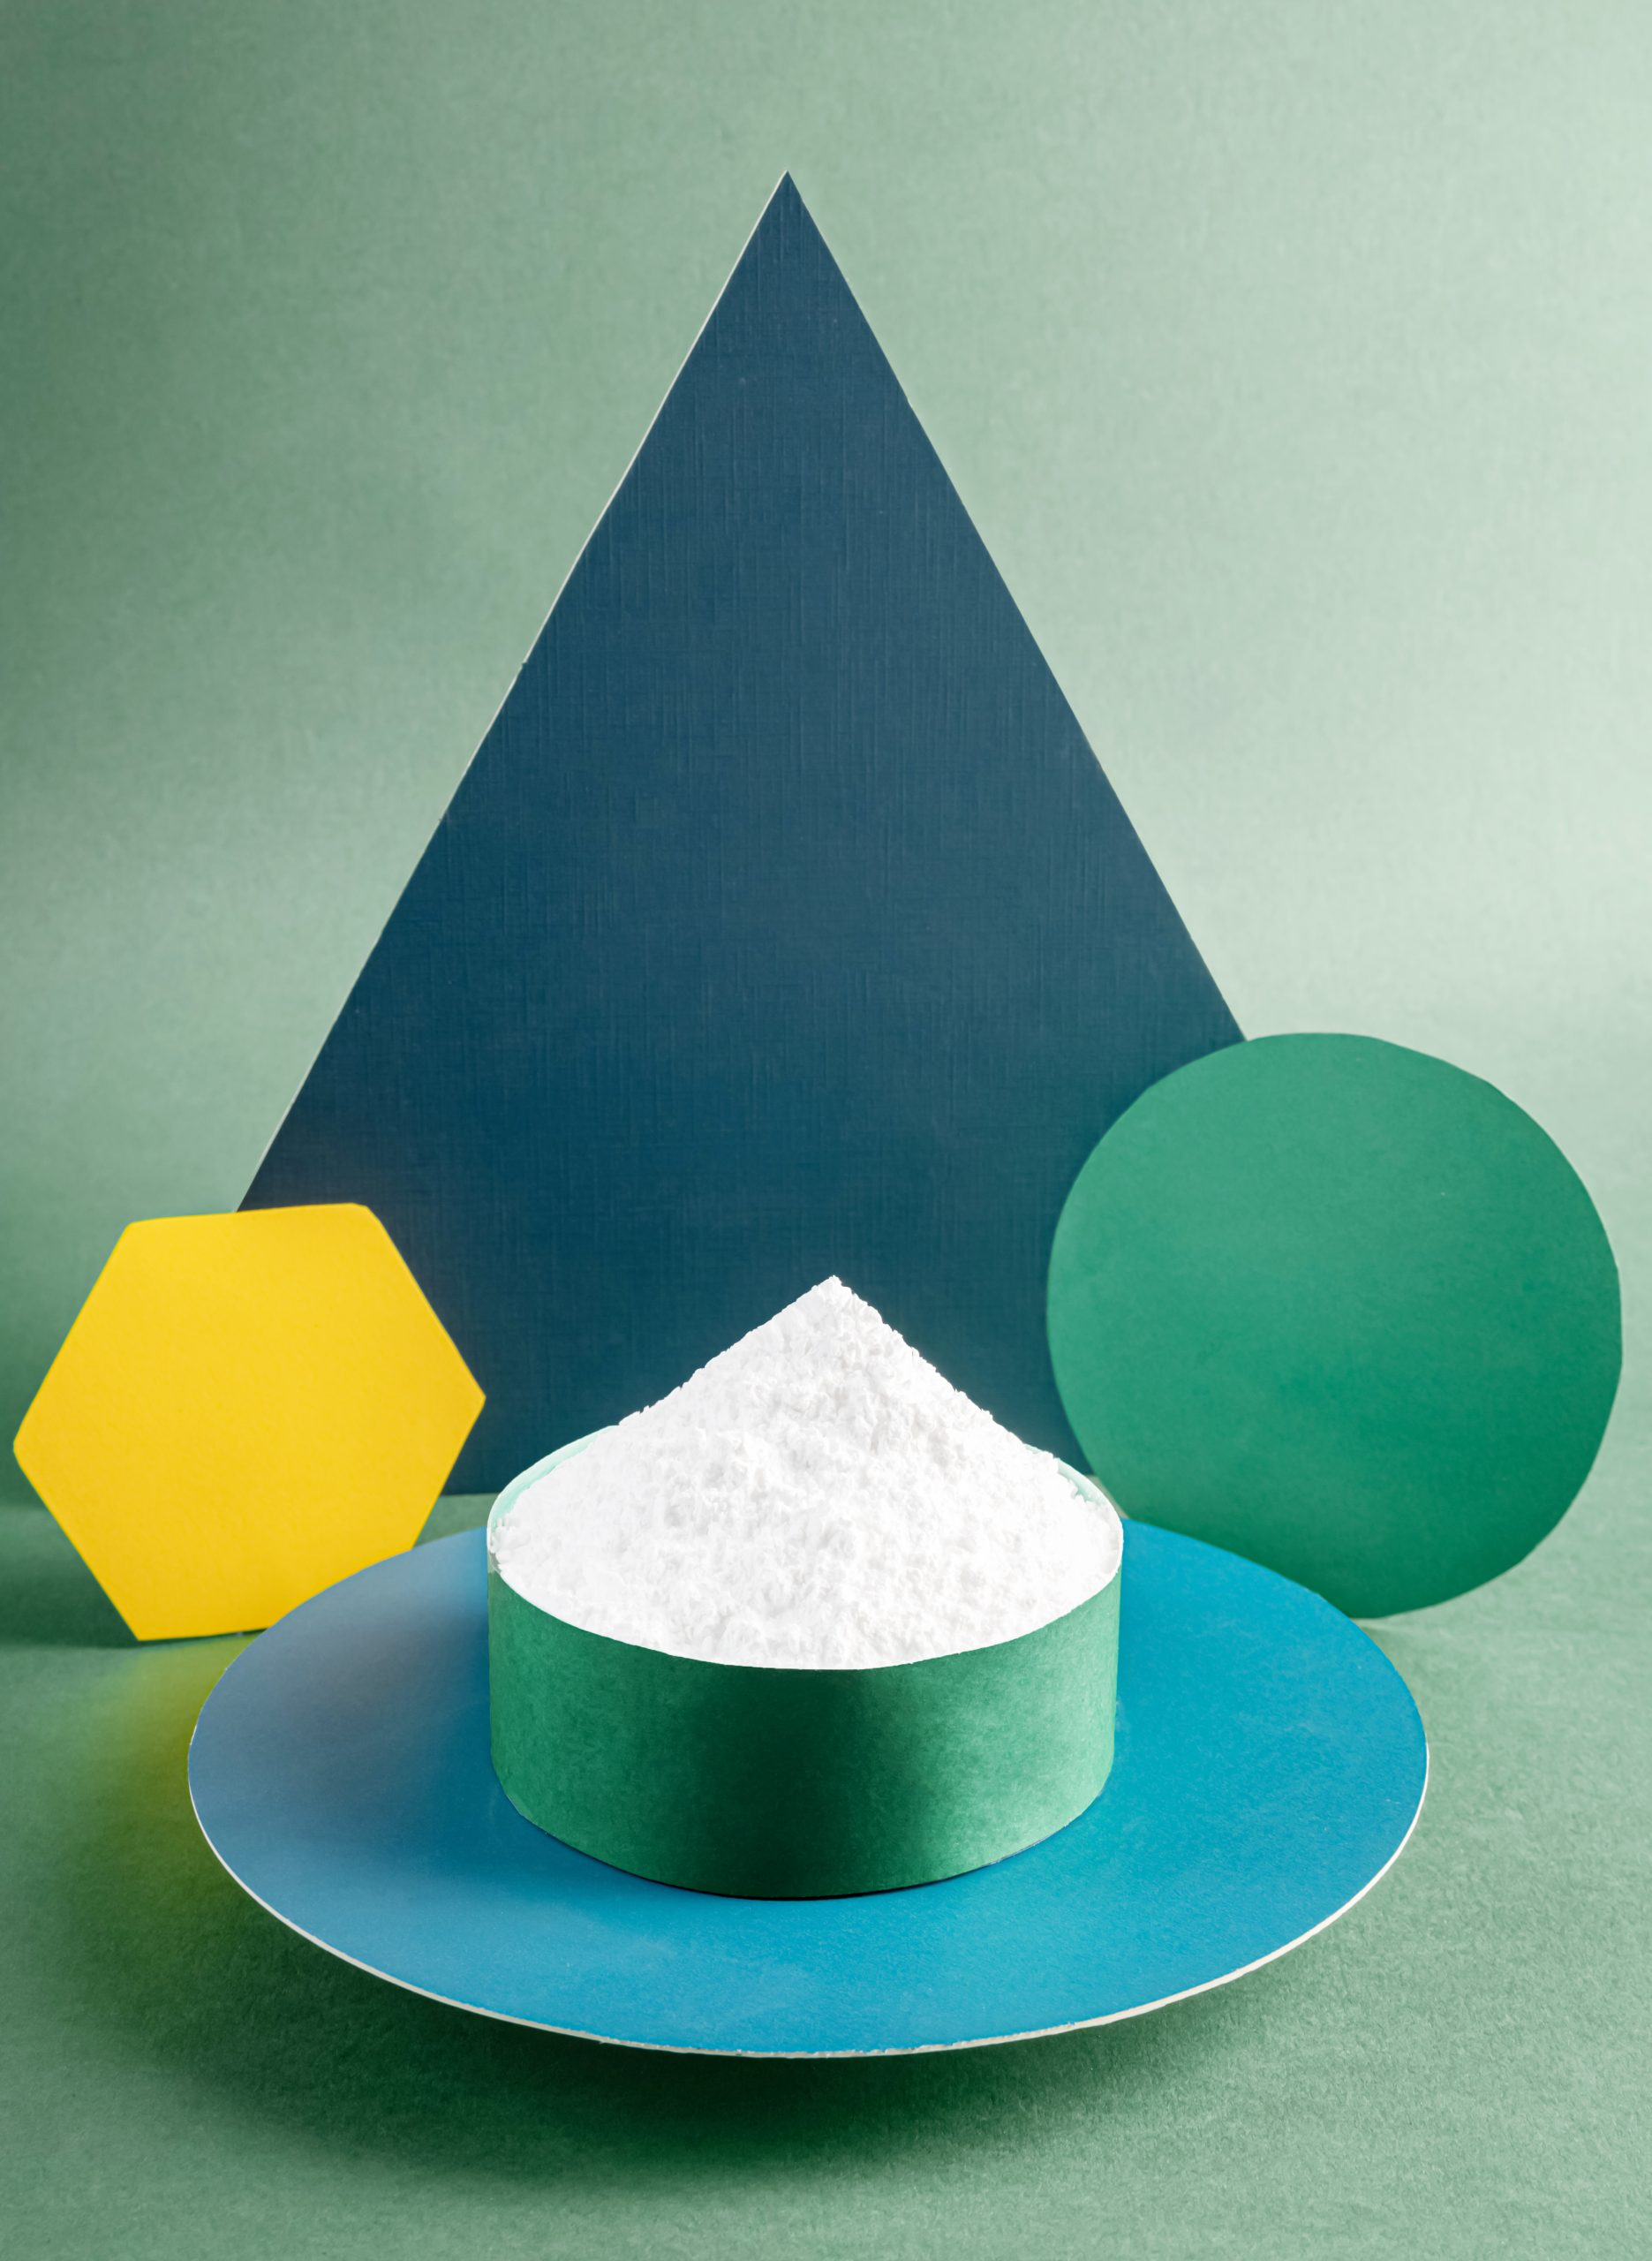 Zinc Stearate Overview